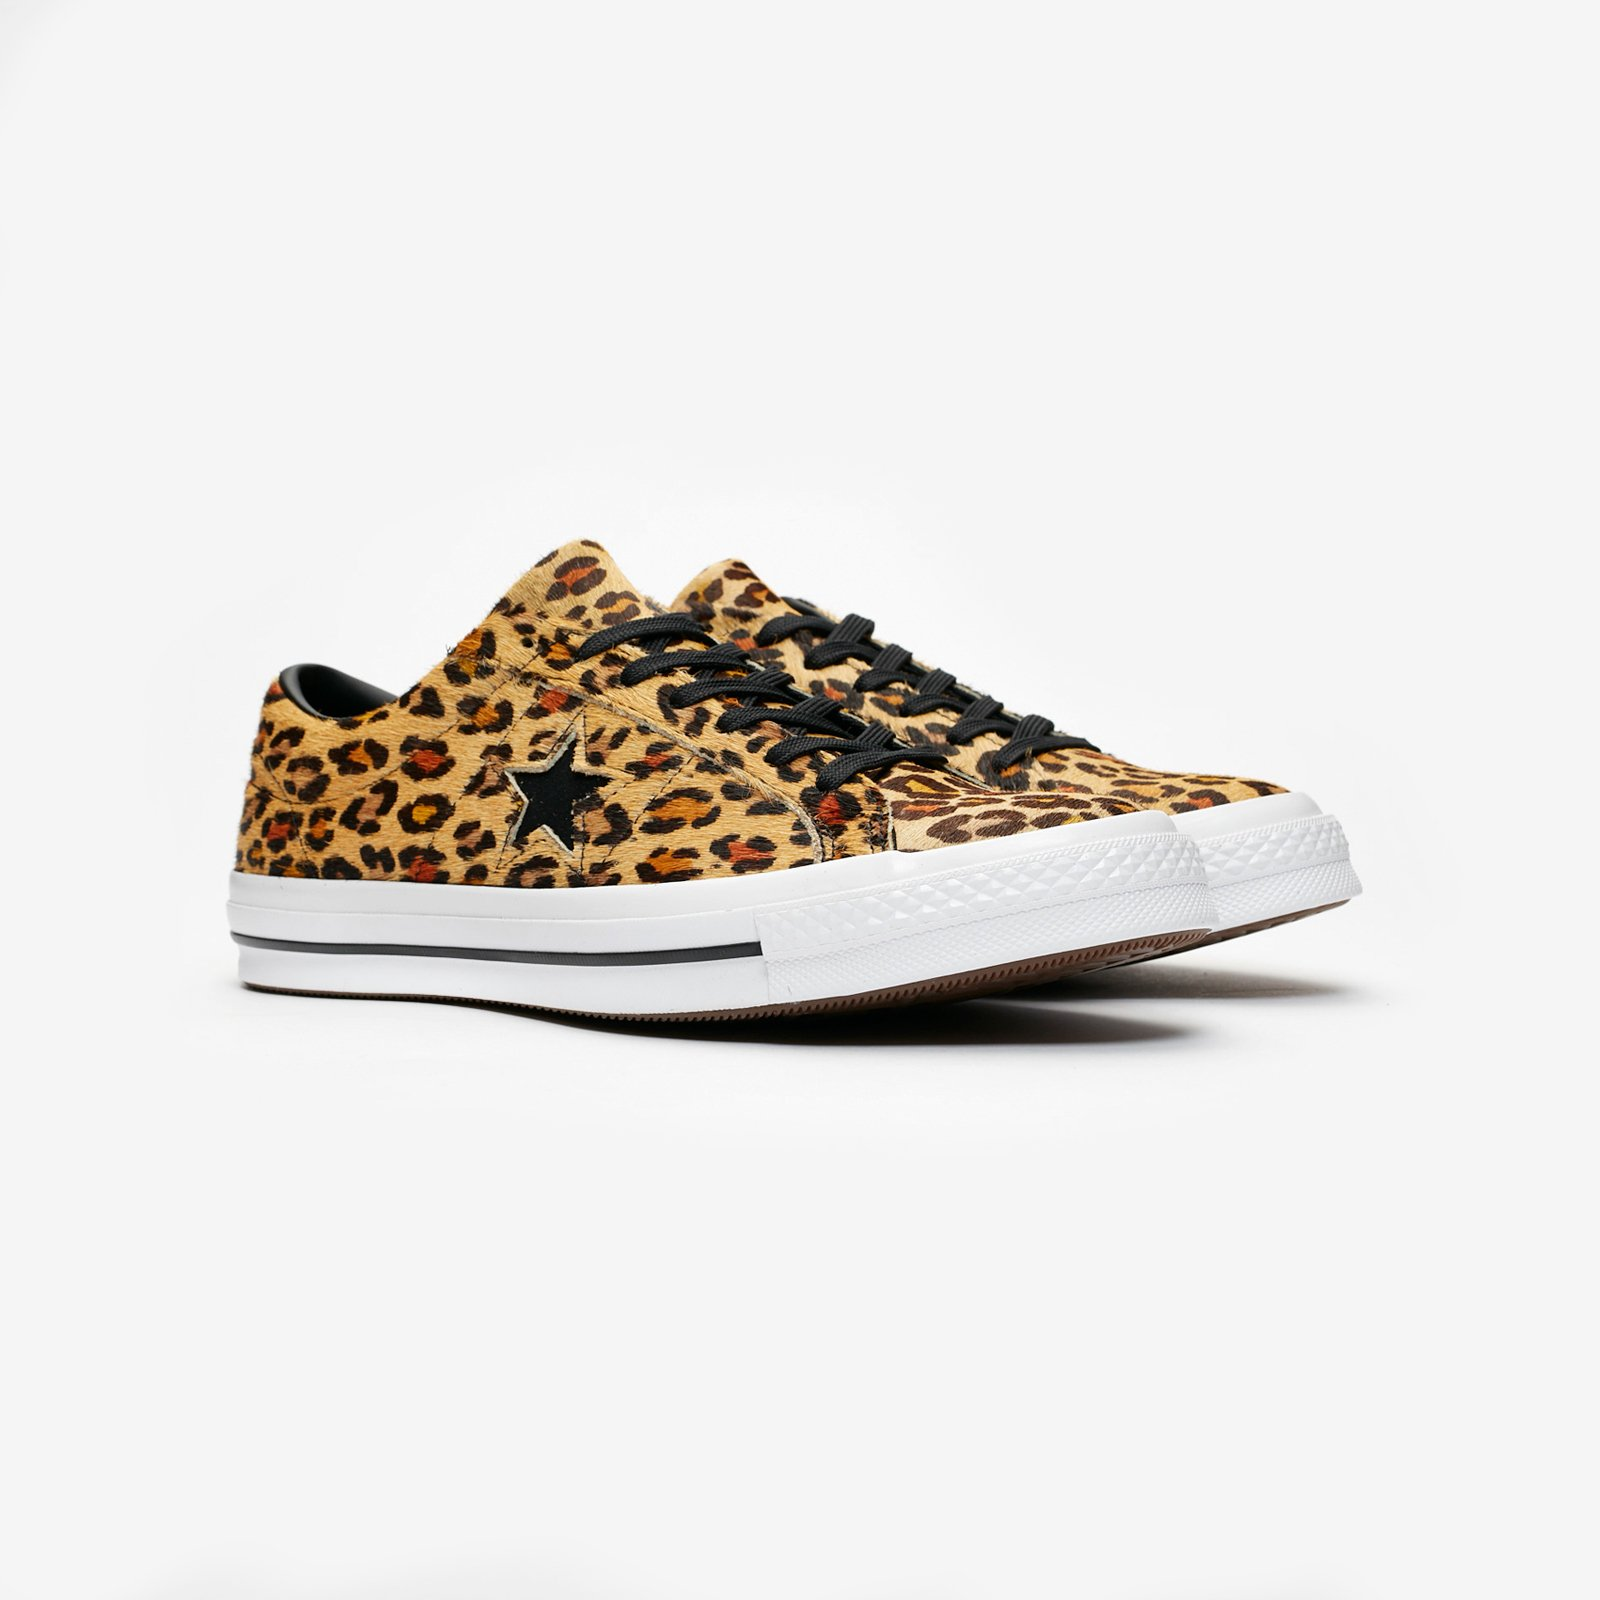 3be207c5017 Converse One Star Ox - 163386c - Sneakersnstuff